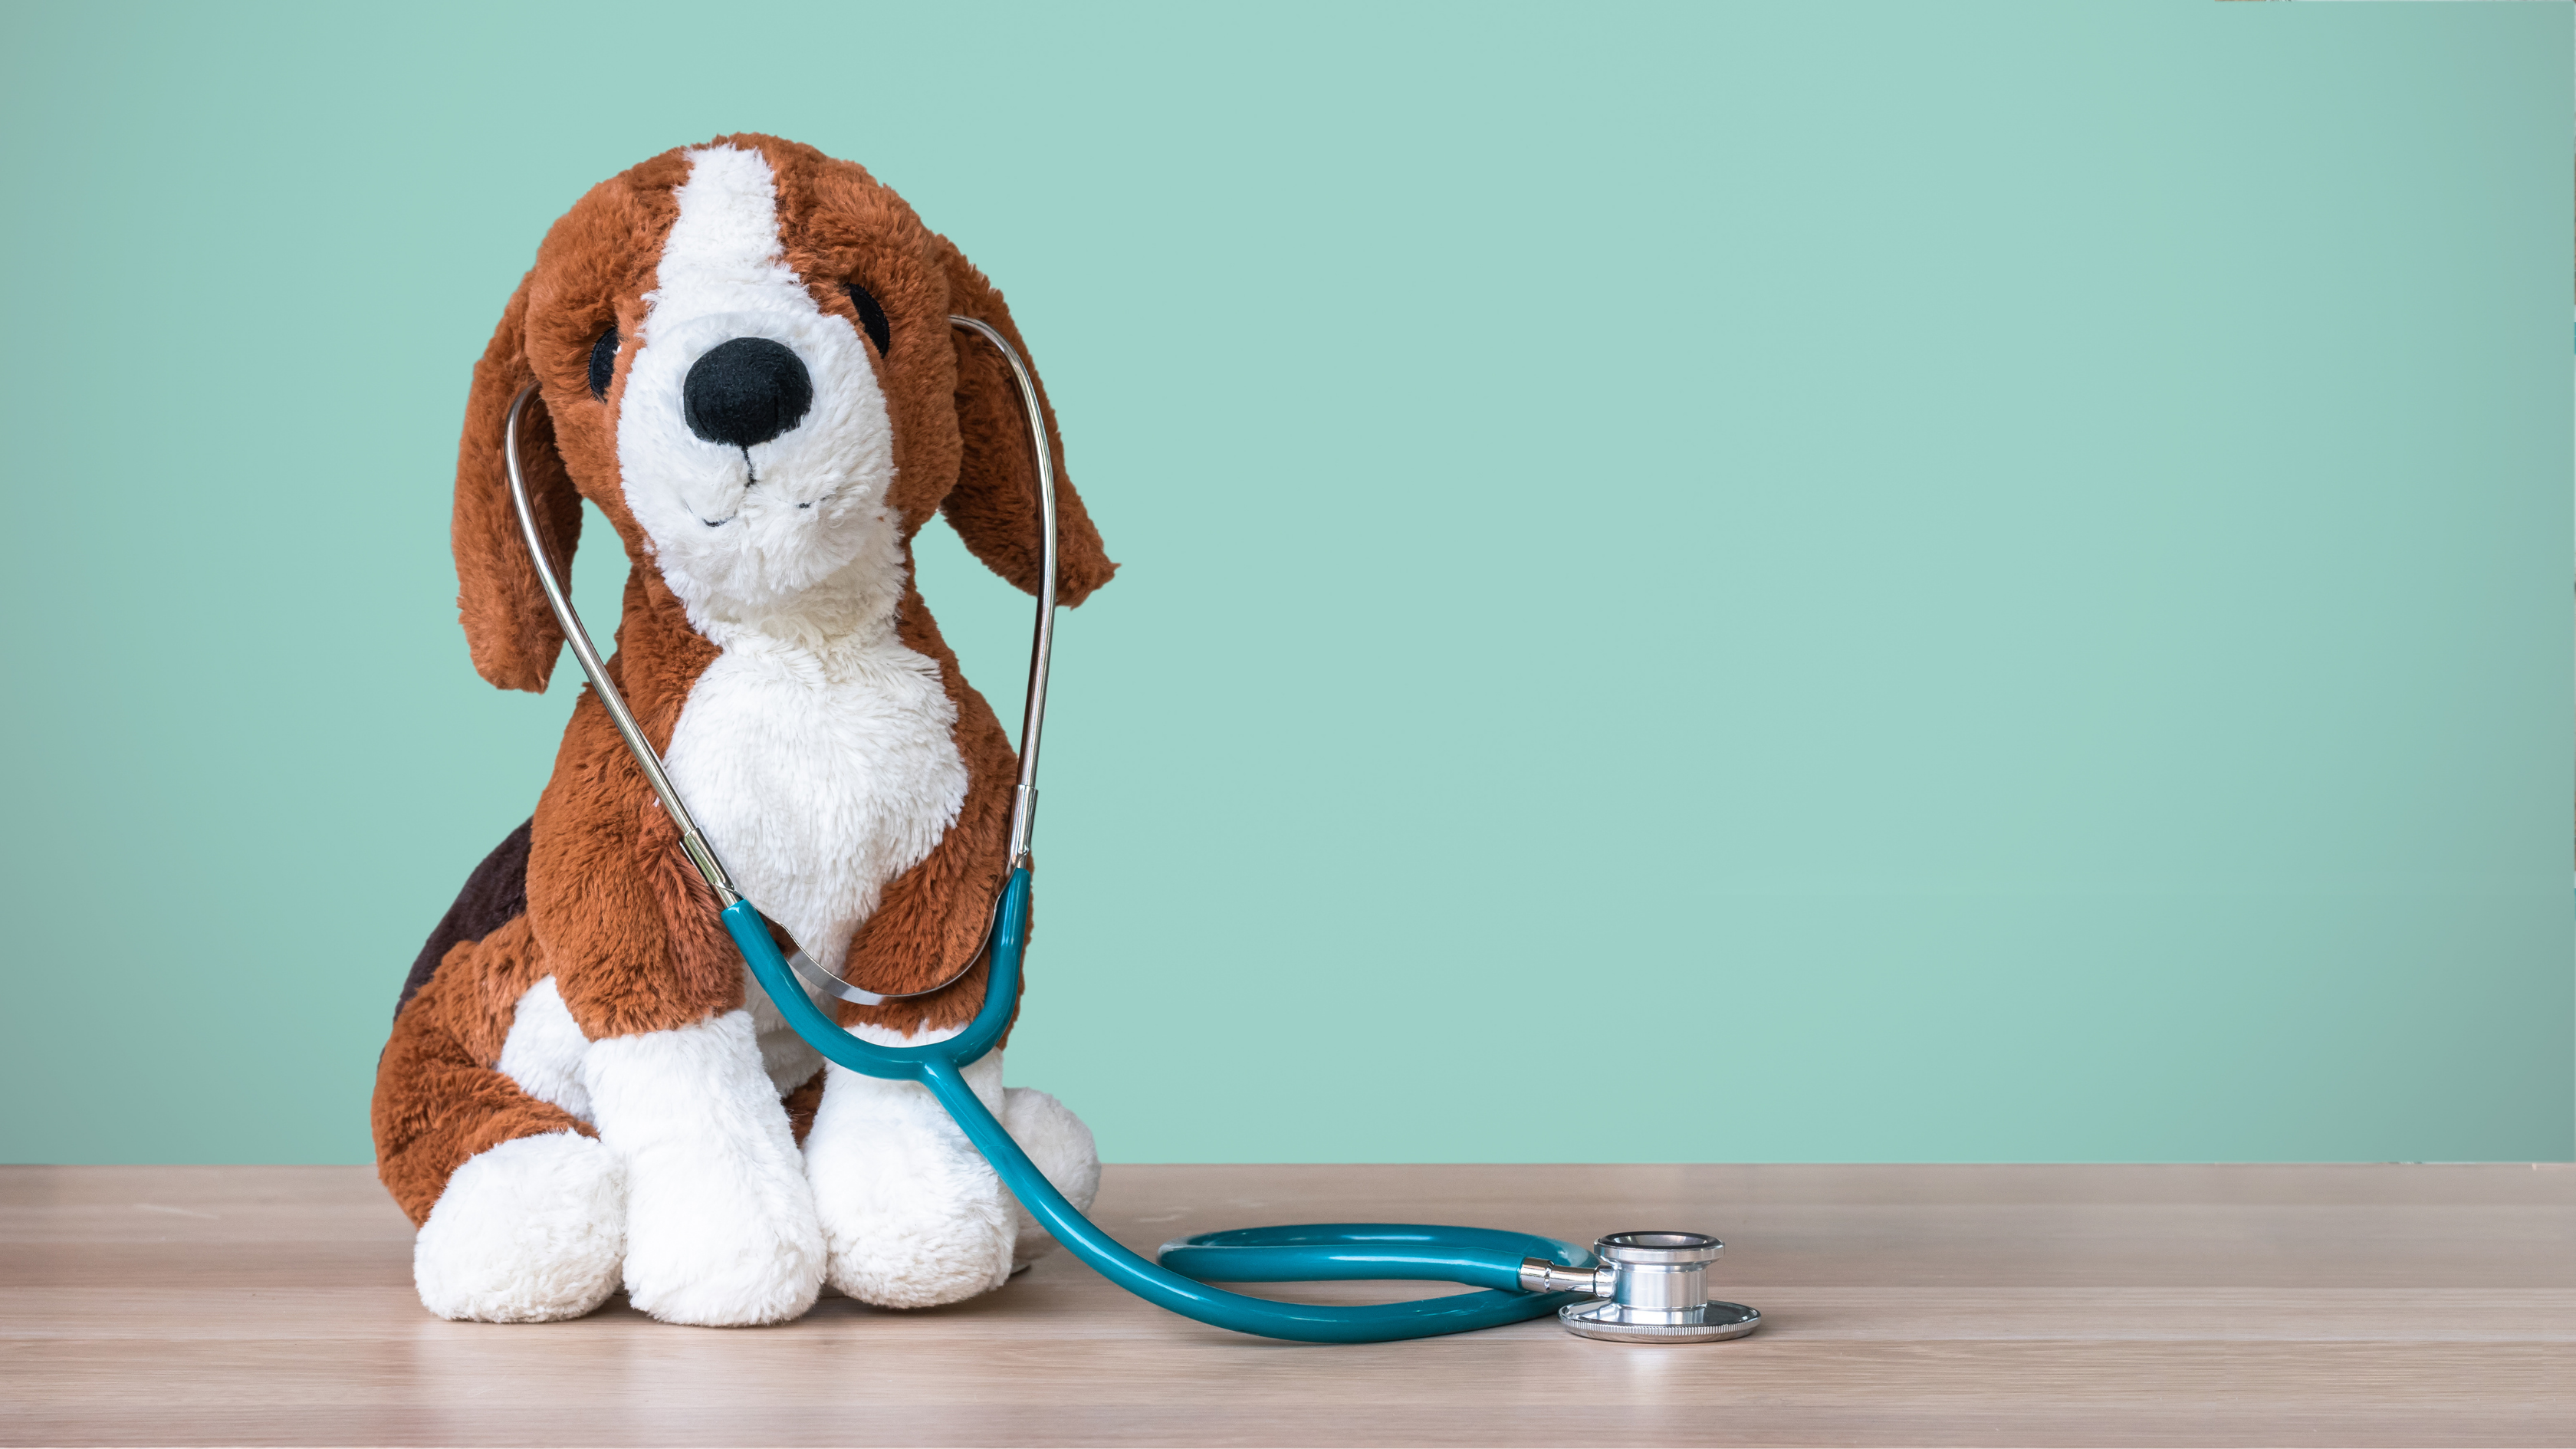 dog stuffed animal with stethoscope